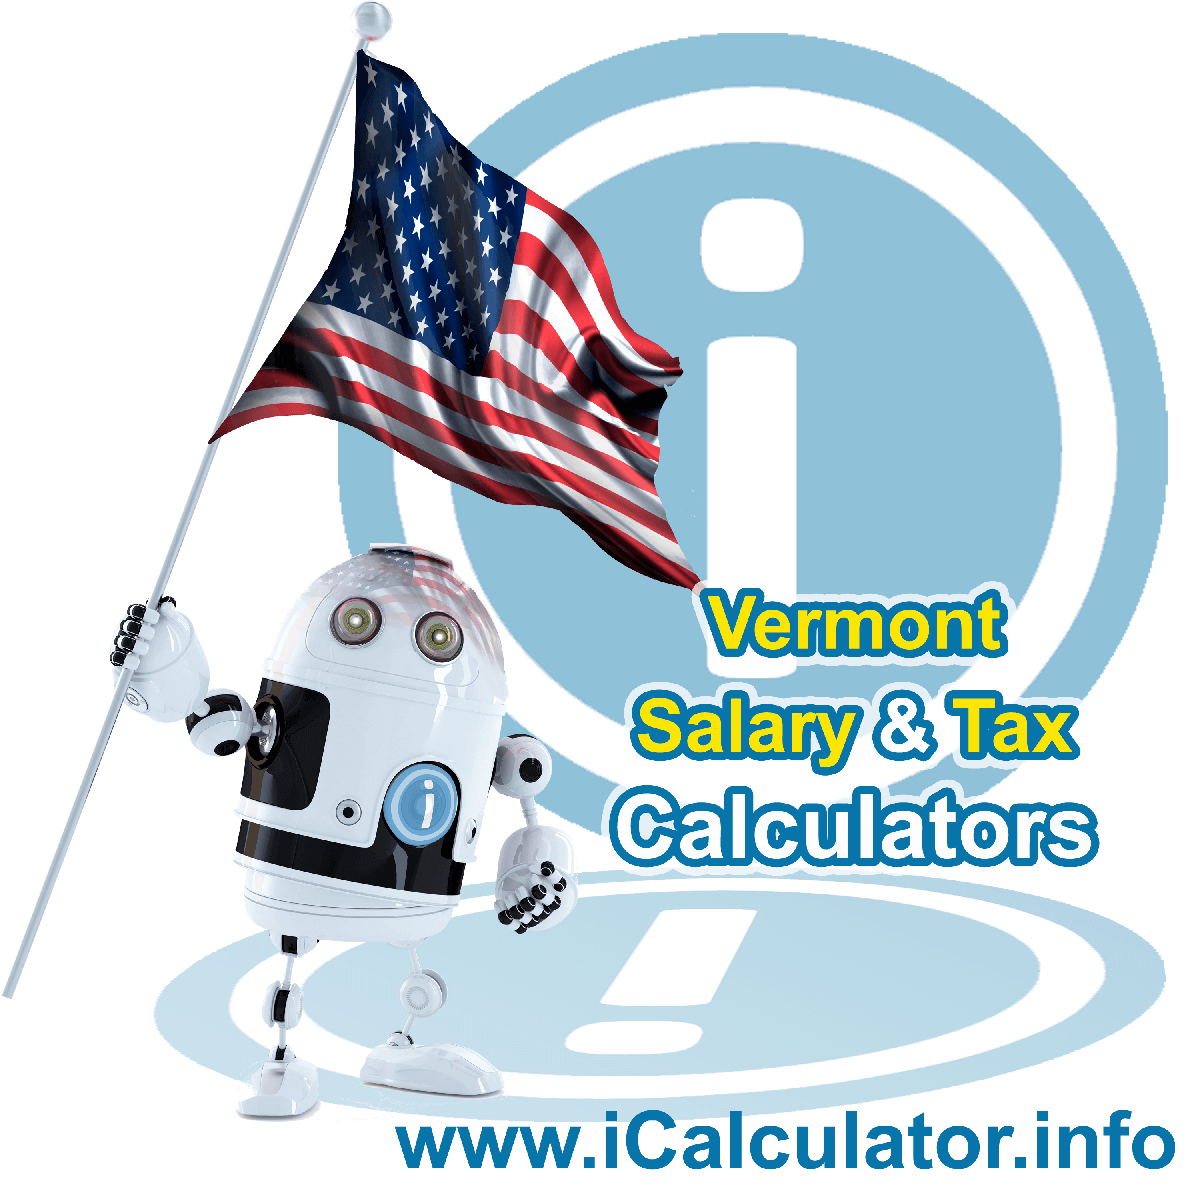 Vermont Salary Calculator 2019 | iCalculator | The Vermont Salary Calculator allows you to quickly calculate your salary after tax including Vermont State Tax, Federal State Tax, Medicare Deductions, Social Security, Capital Gains and other income tax and salary deductions complete with supporting Vermont state tax tables